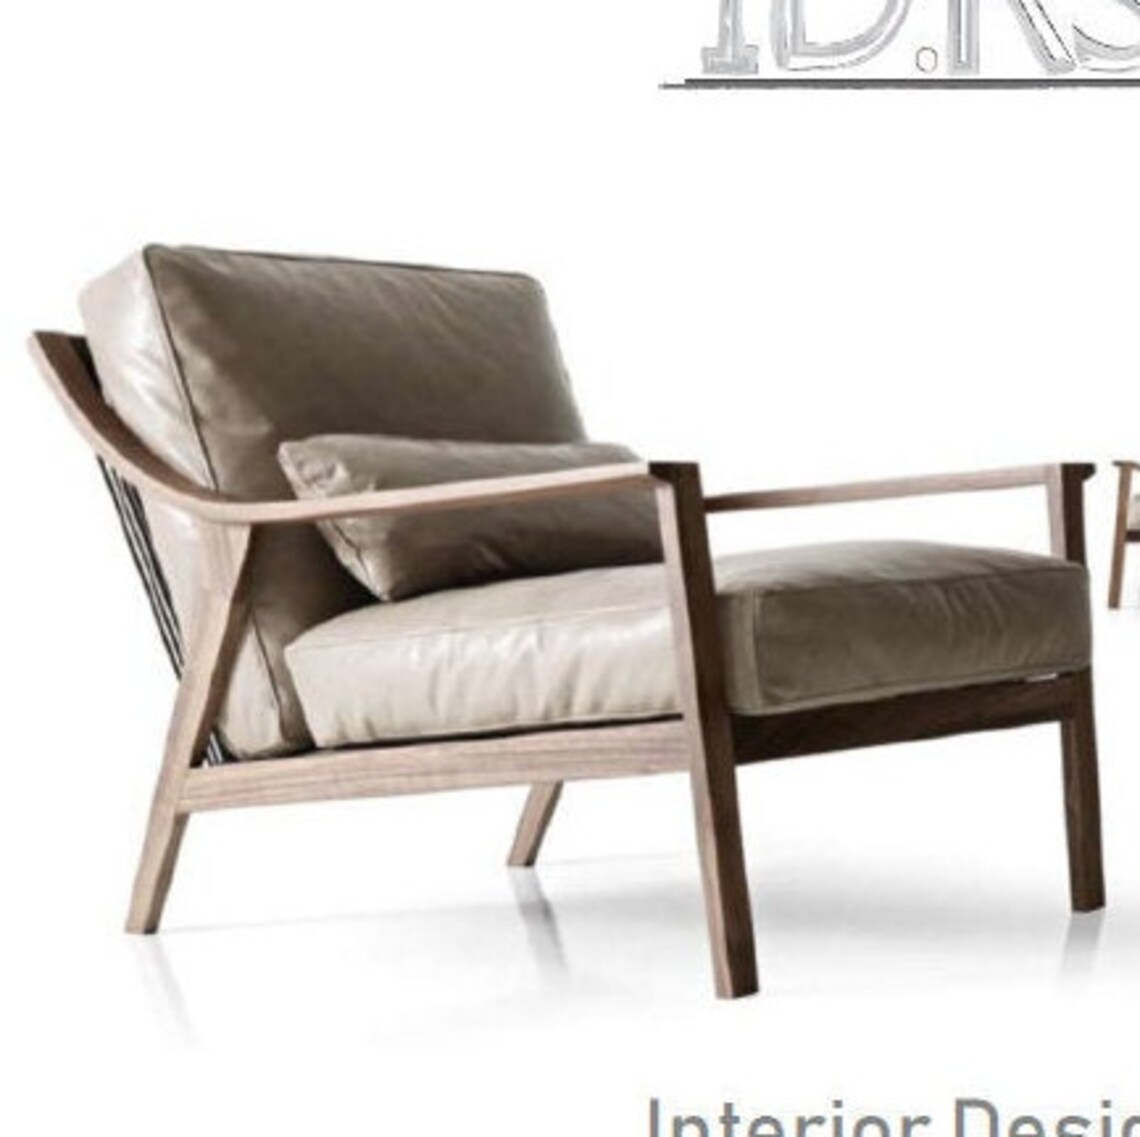 Vintage Armchair 2020 2021 trends   Etsy